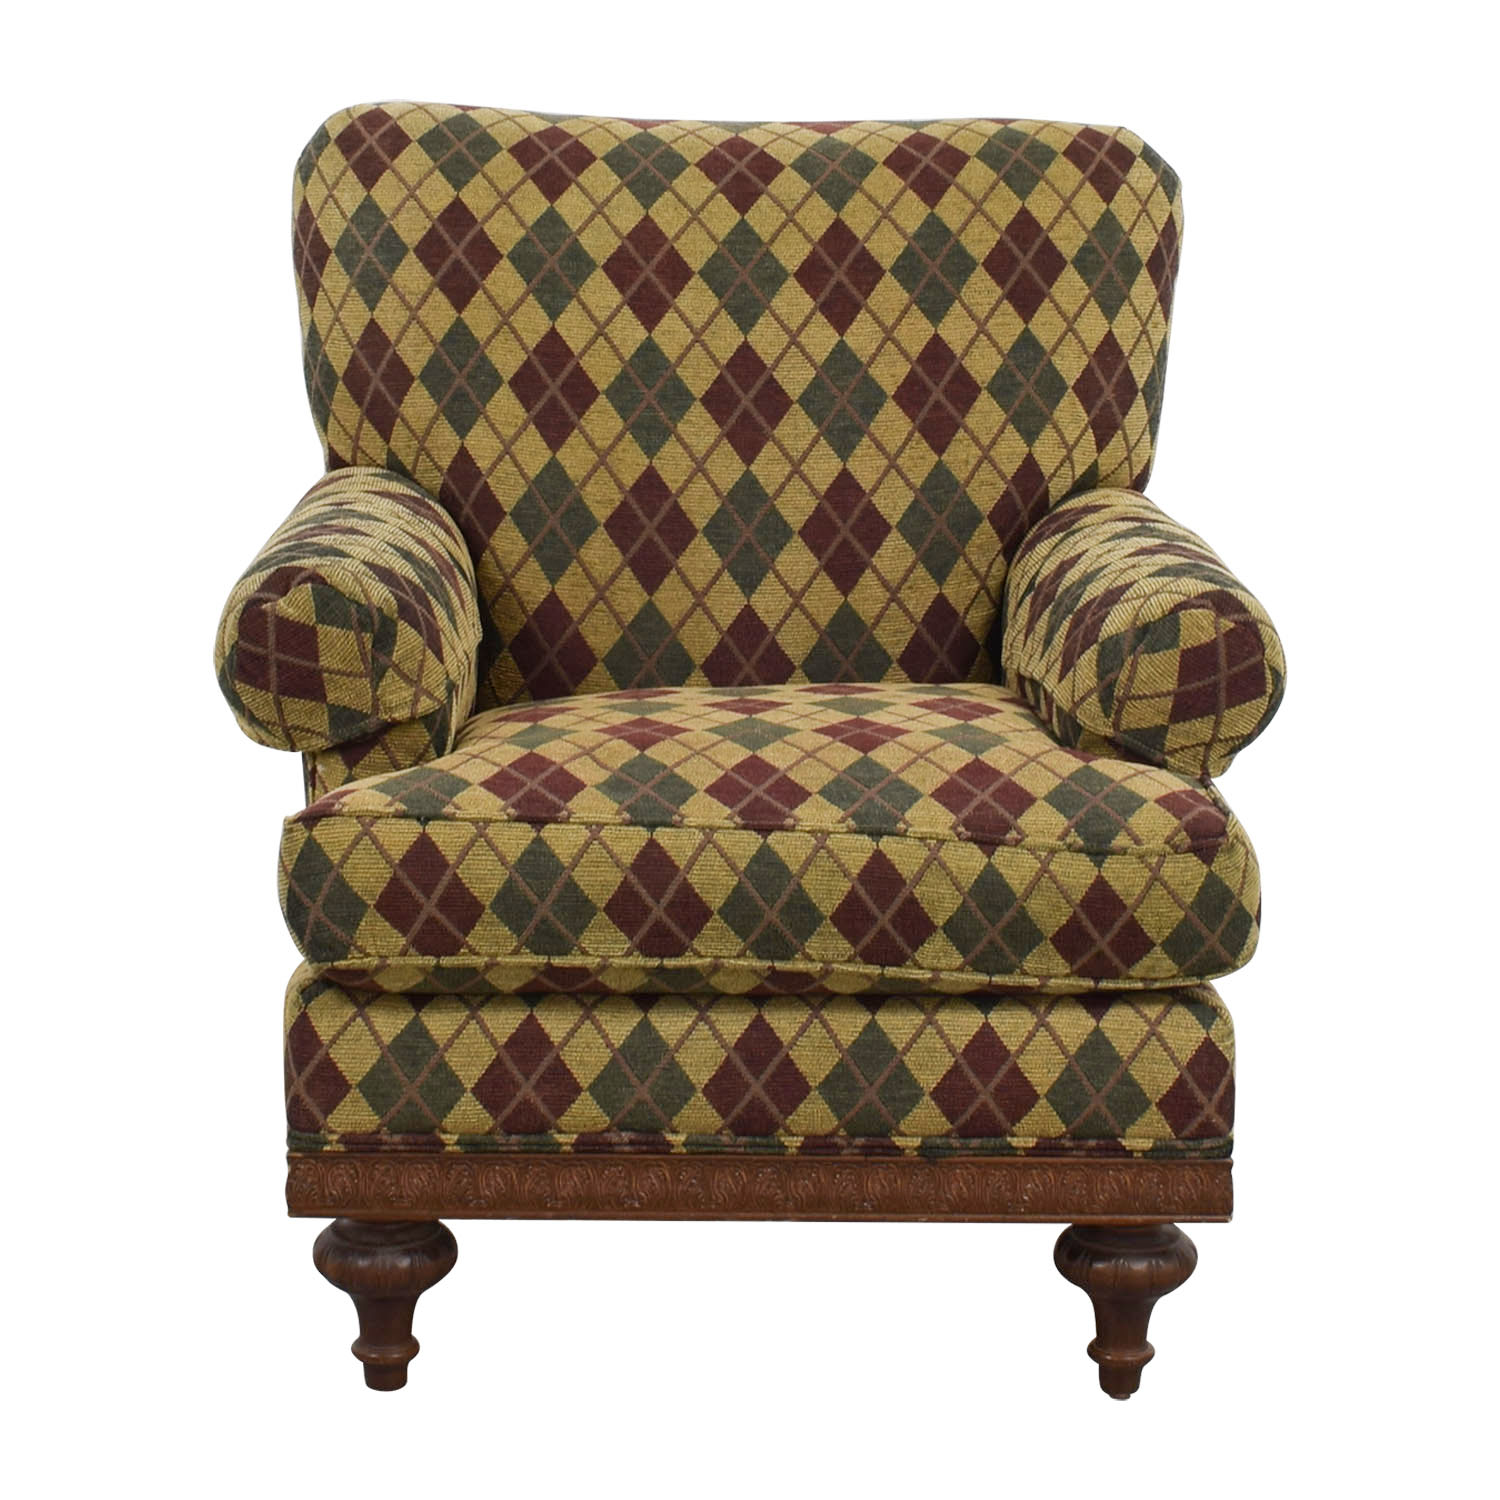 Argyle Upholstered Arm Chair on sale